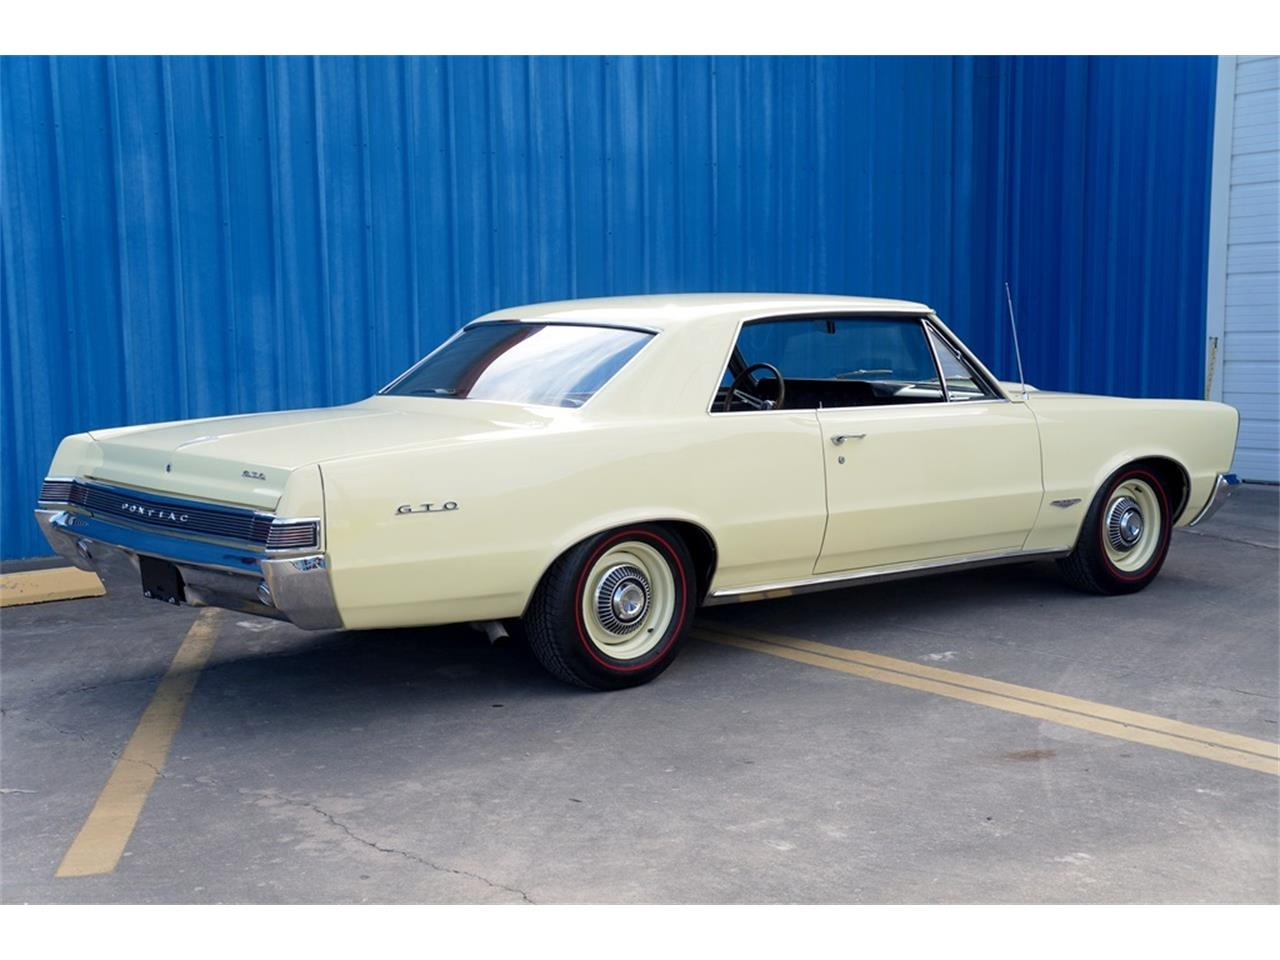 Large Picture of Classic 1965 Pontiac GTO located in New Braunfels Texas - $44,900.00 - PWOM